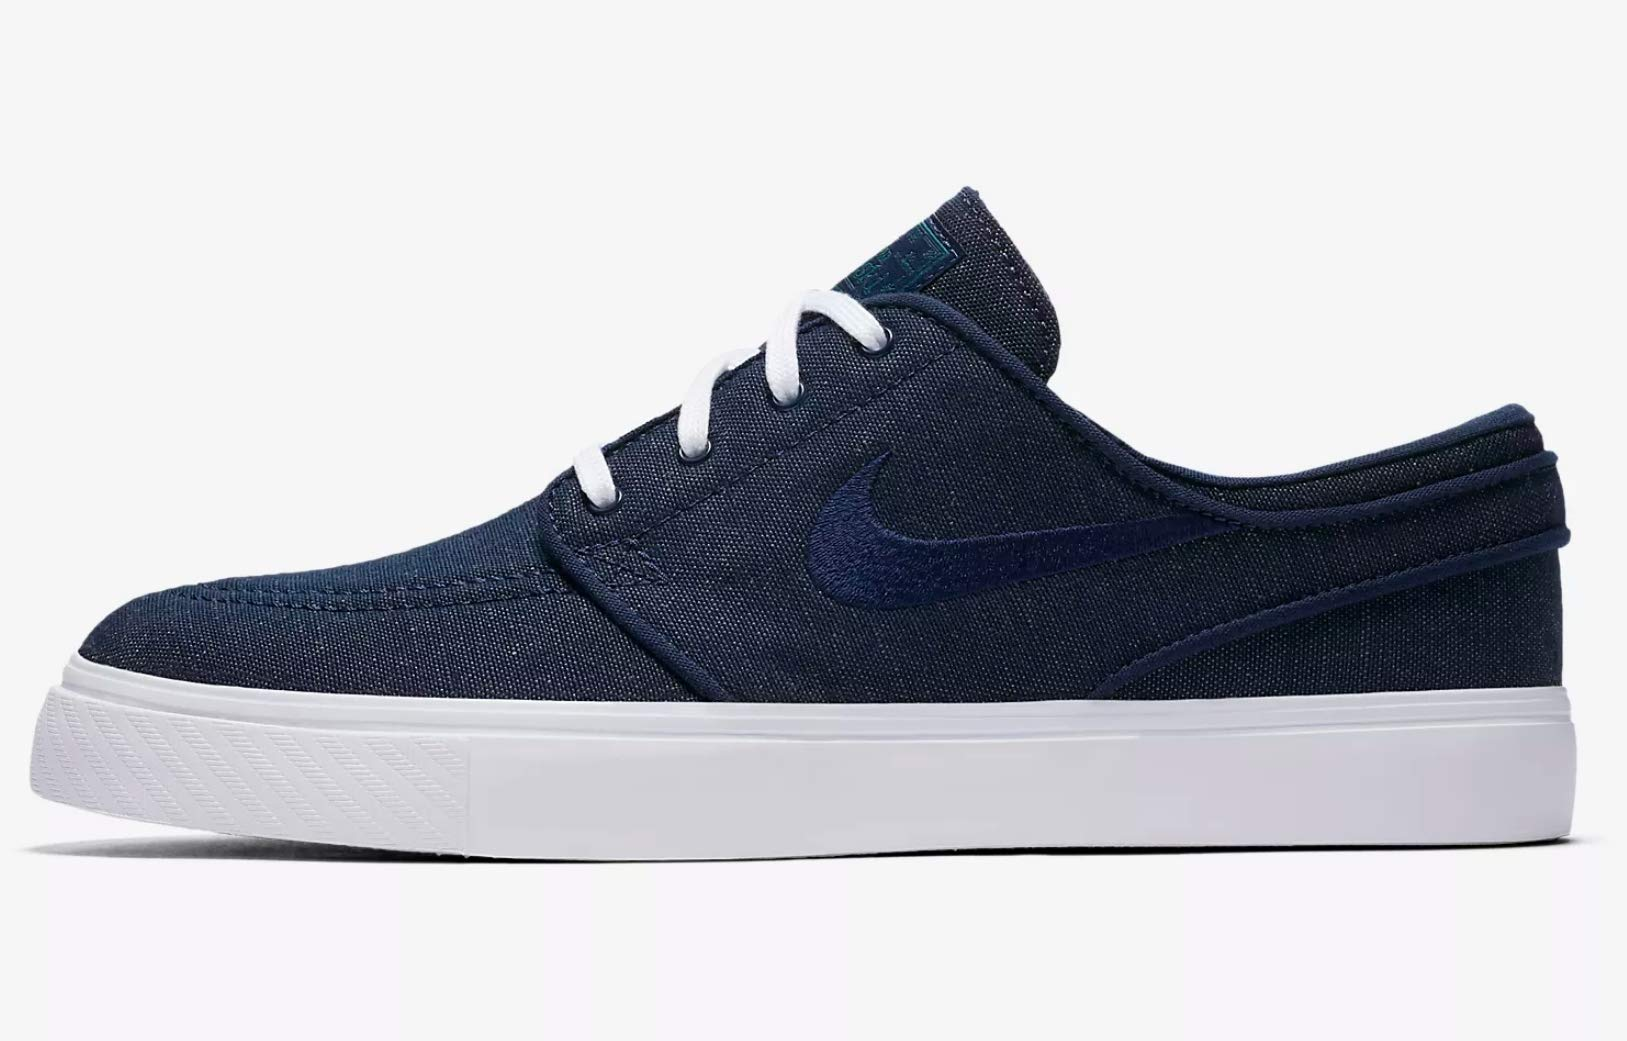 197bafdff56c Galleon - NIKE Zoom Stefan Janoski CNVS Mens Skateboarding-Shoes  615957-403 14 - Blue Void Blue Void-RED Crush-White